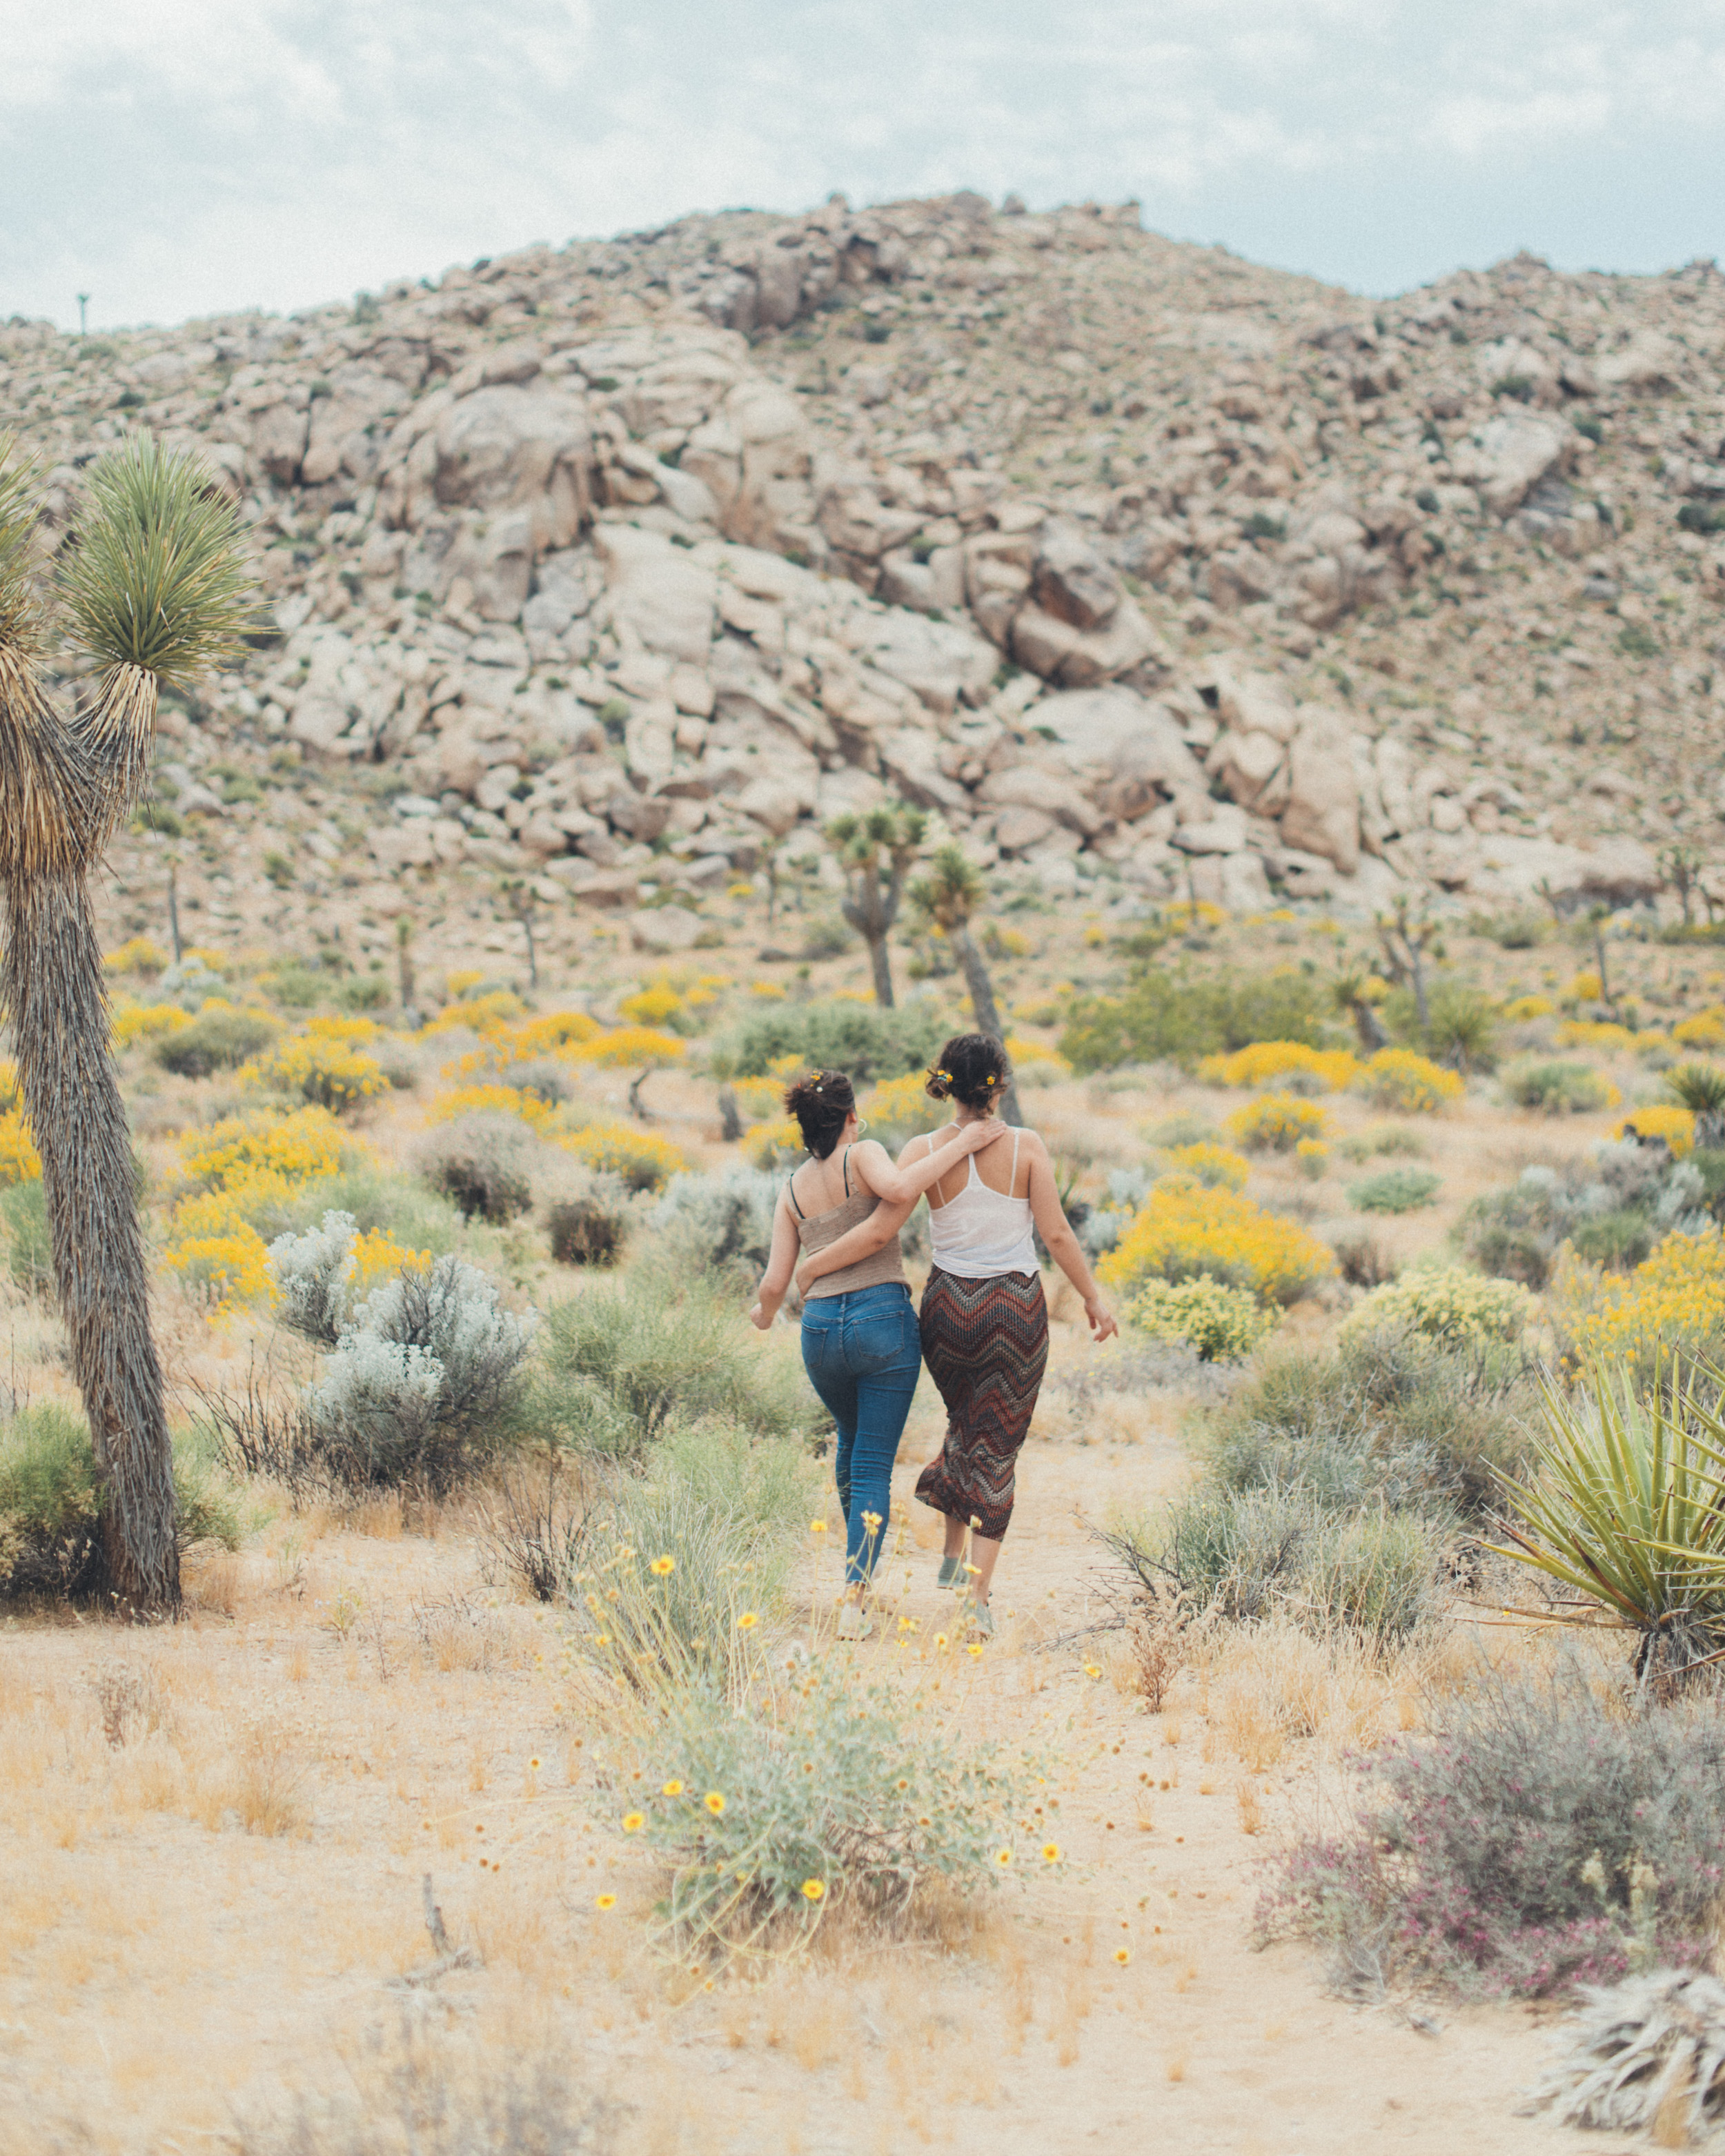 Lily and Madeleine both wear the Tye sneaker in Joshua Tree National Park.